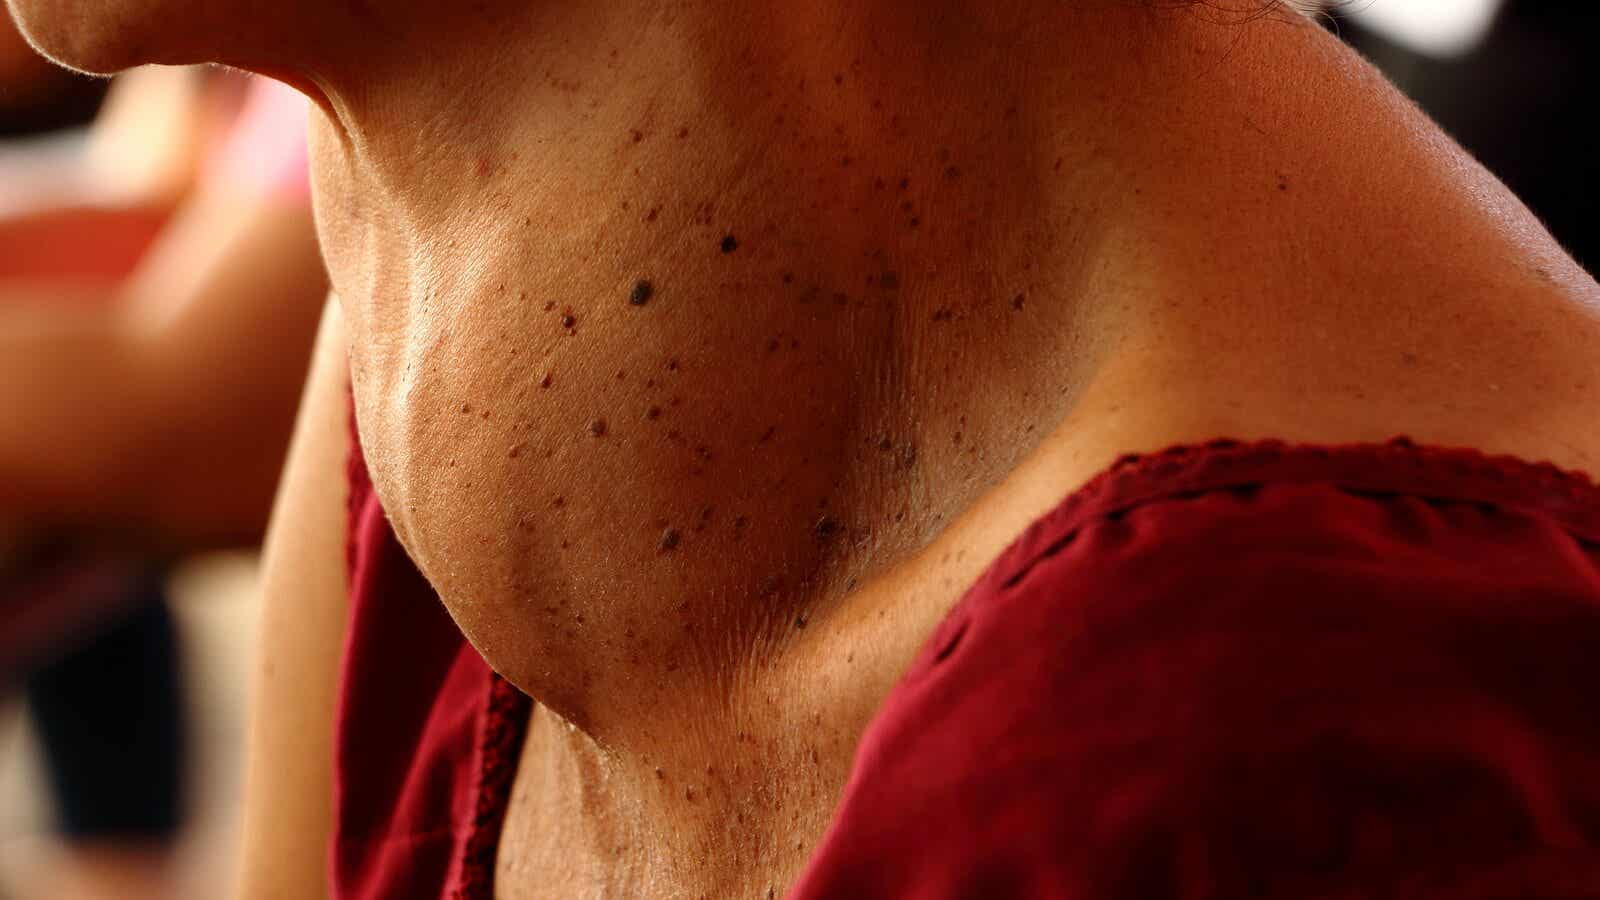 A neck with goiter, a swollen thyroid gland.